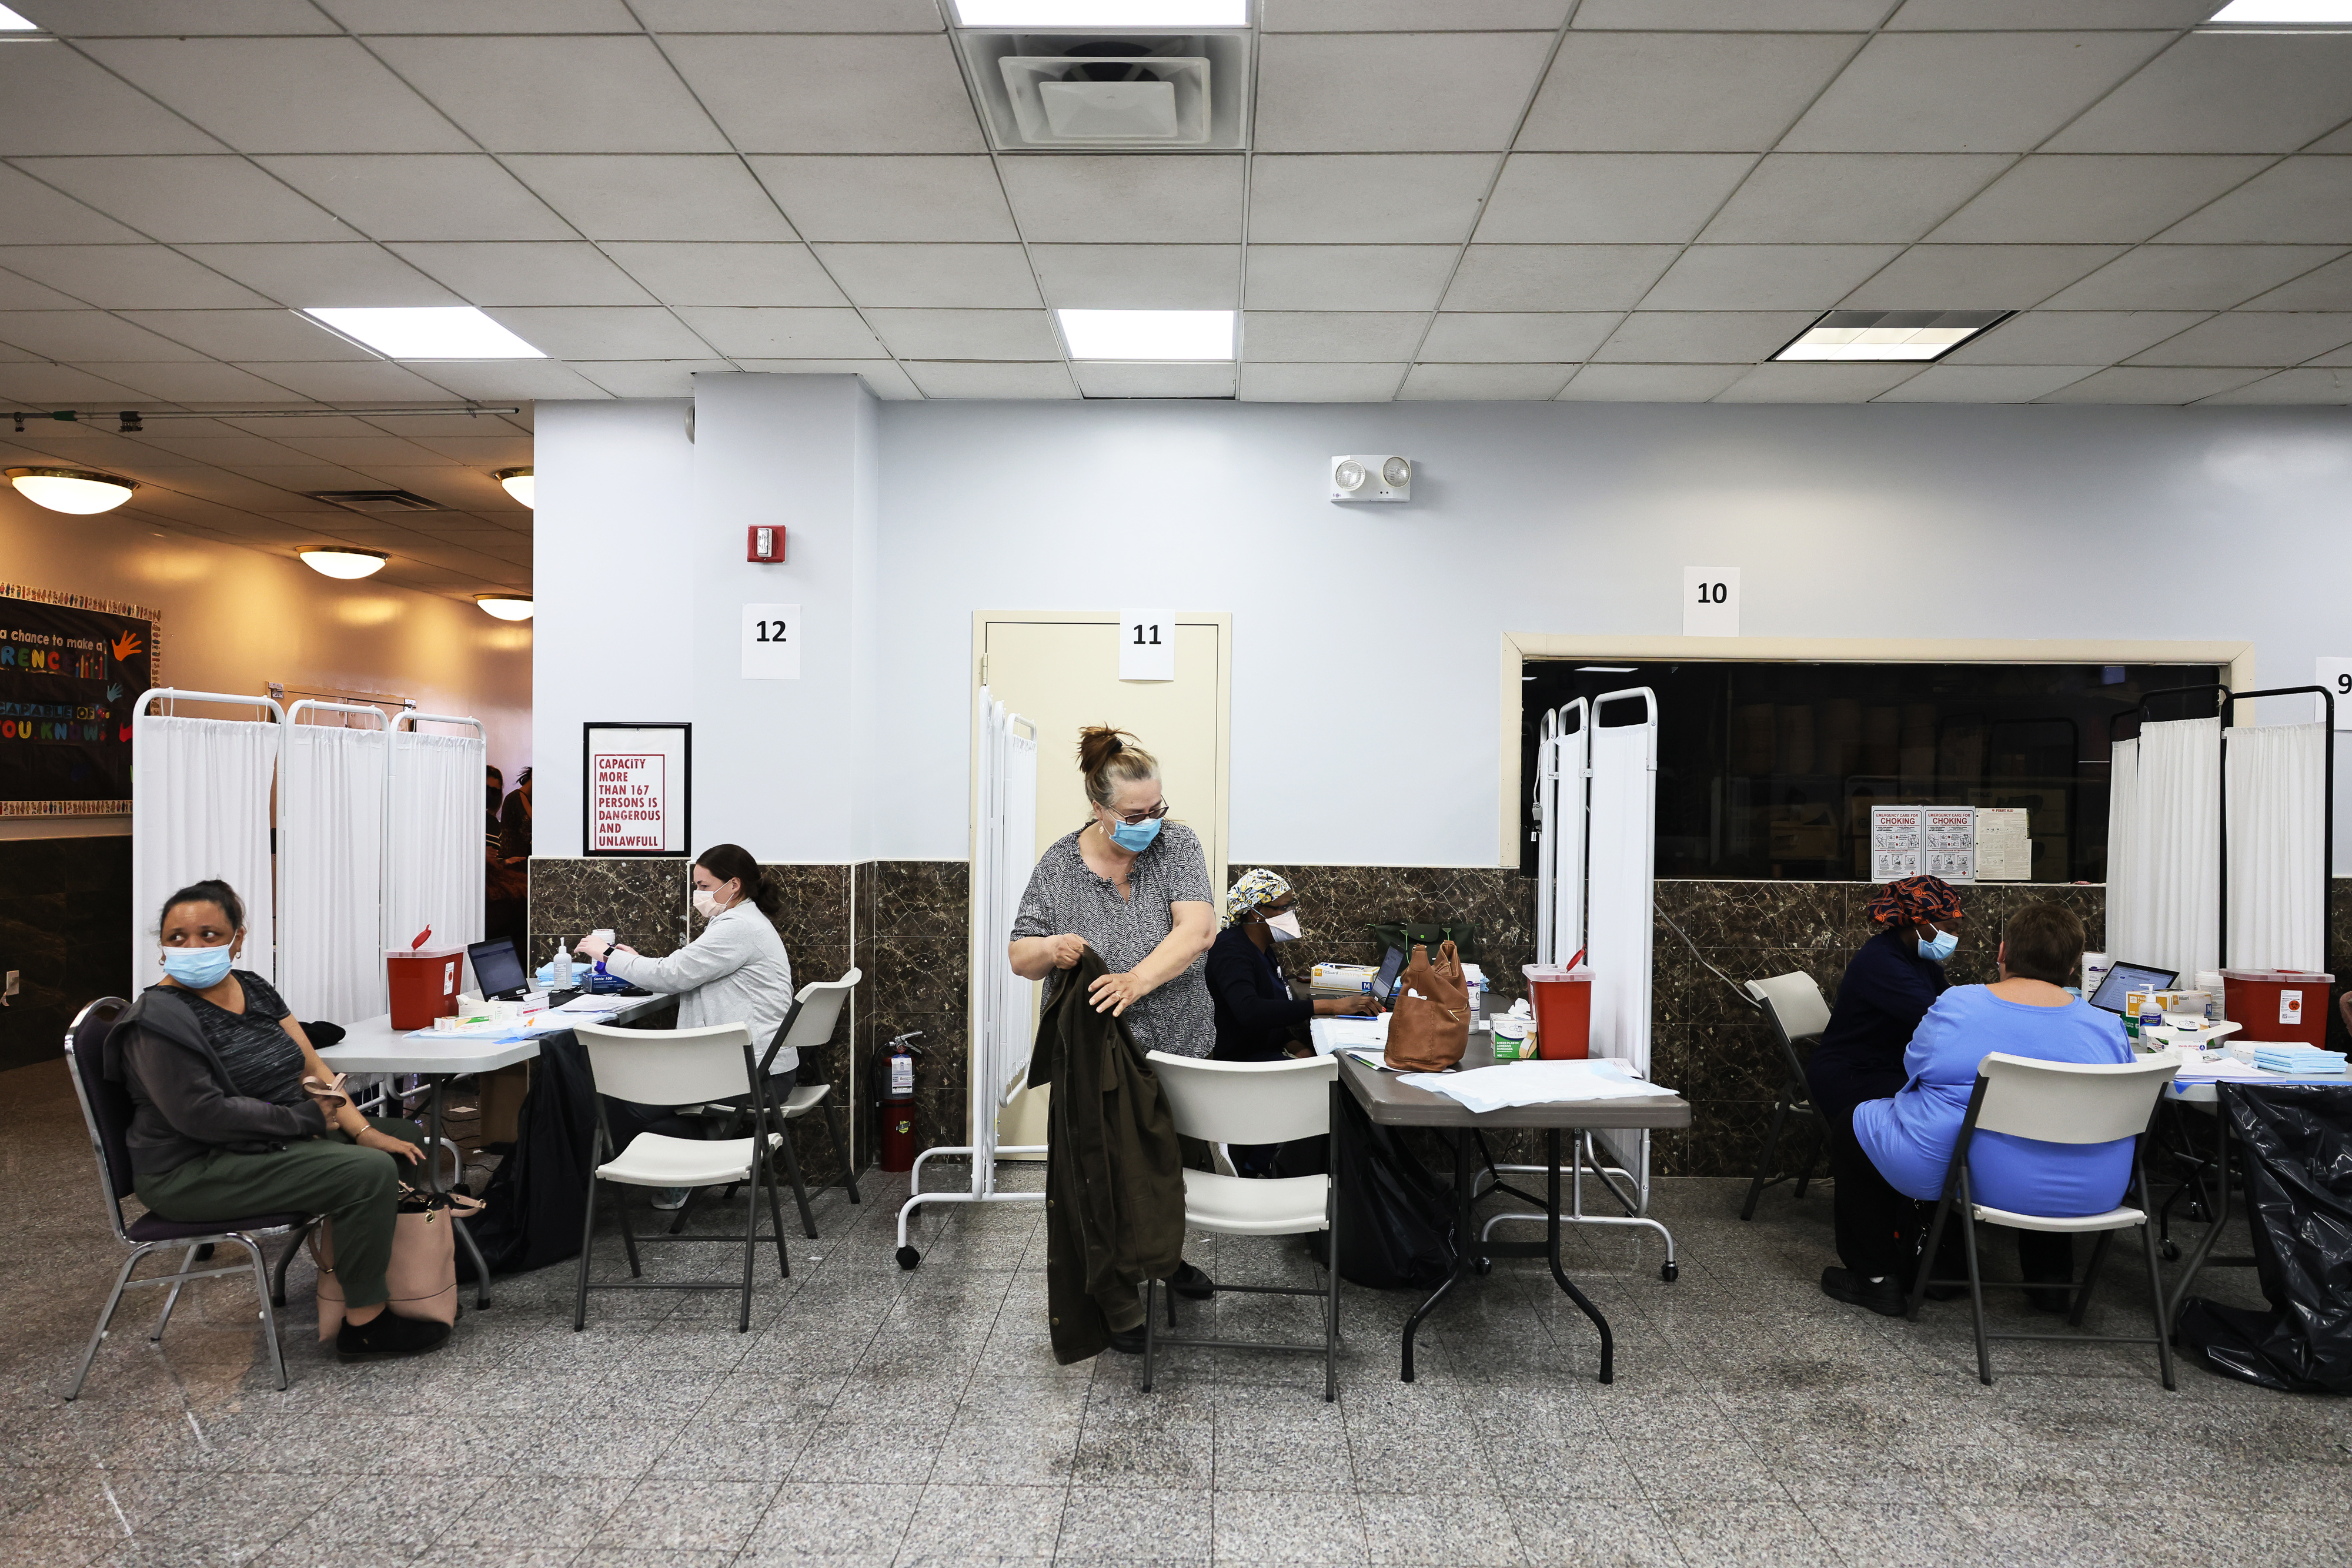 People receive COVID vaccines in an office space, with small white curtains separating recipients.